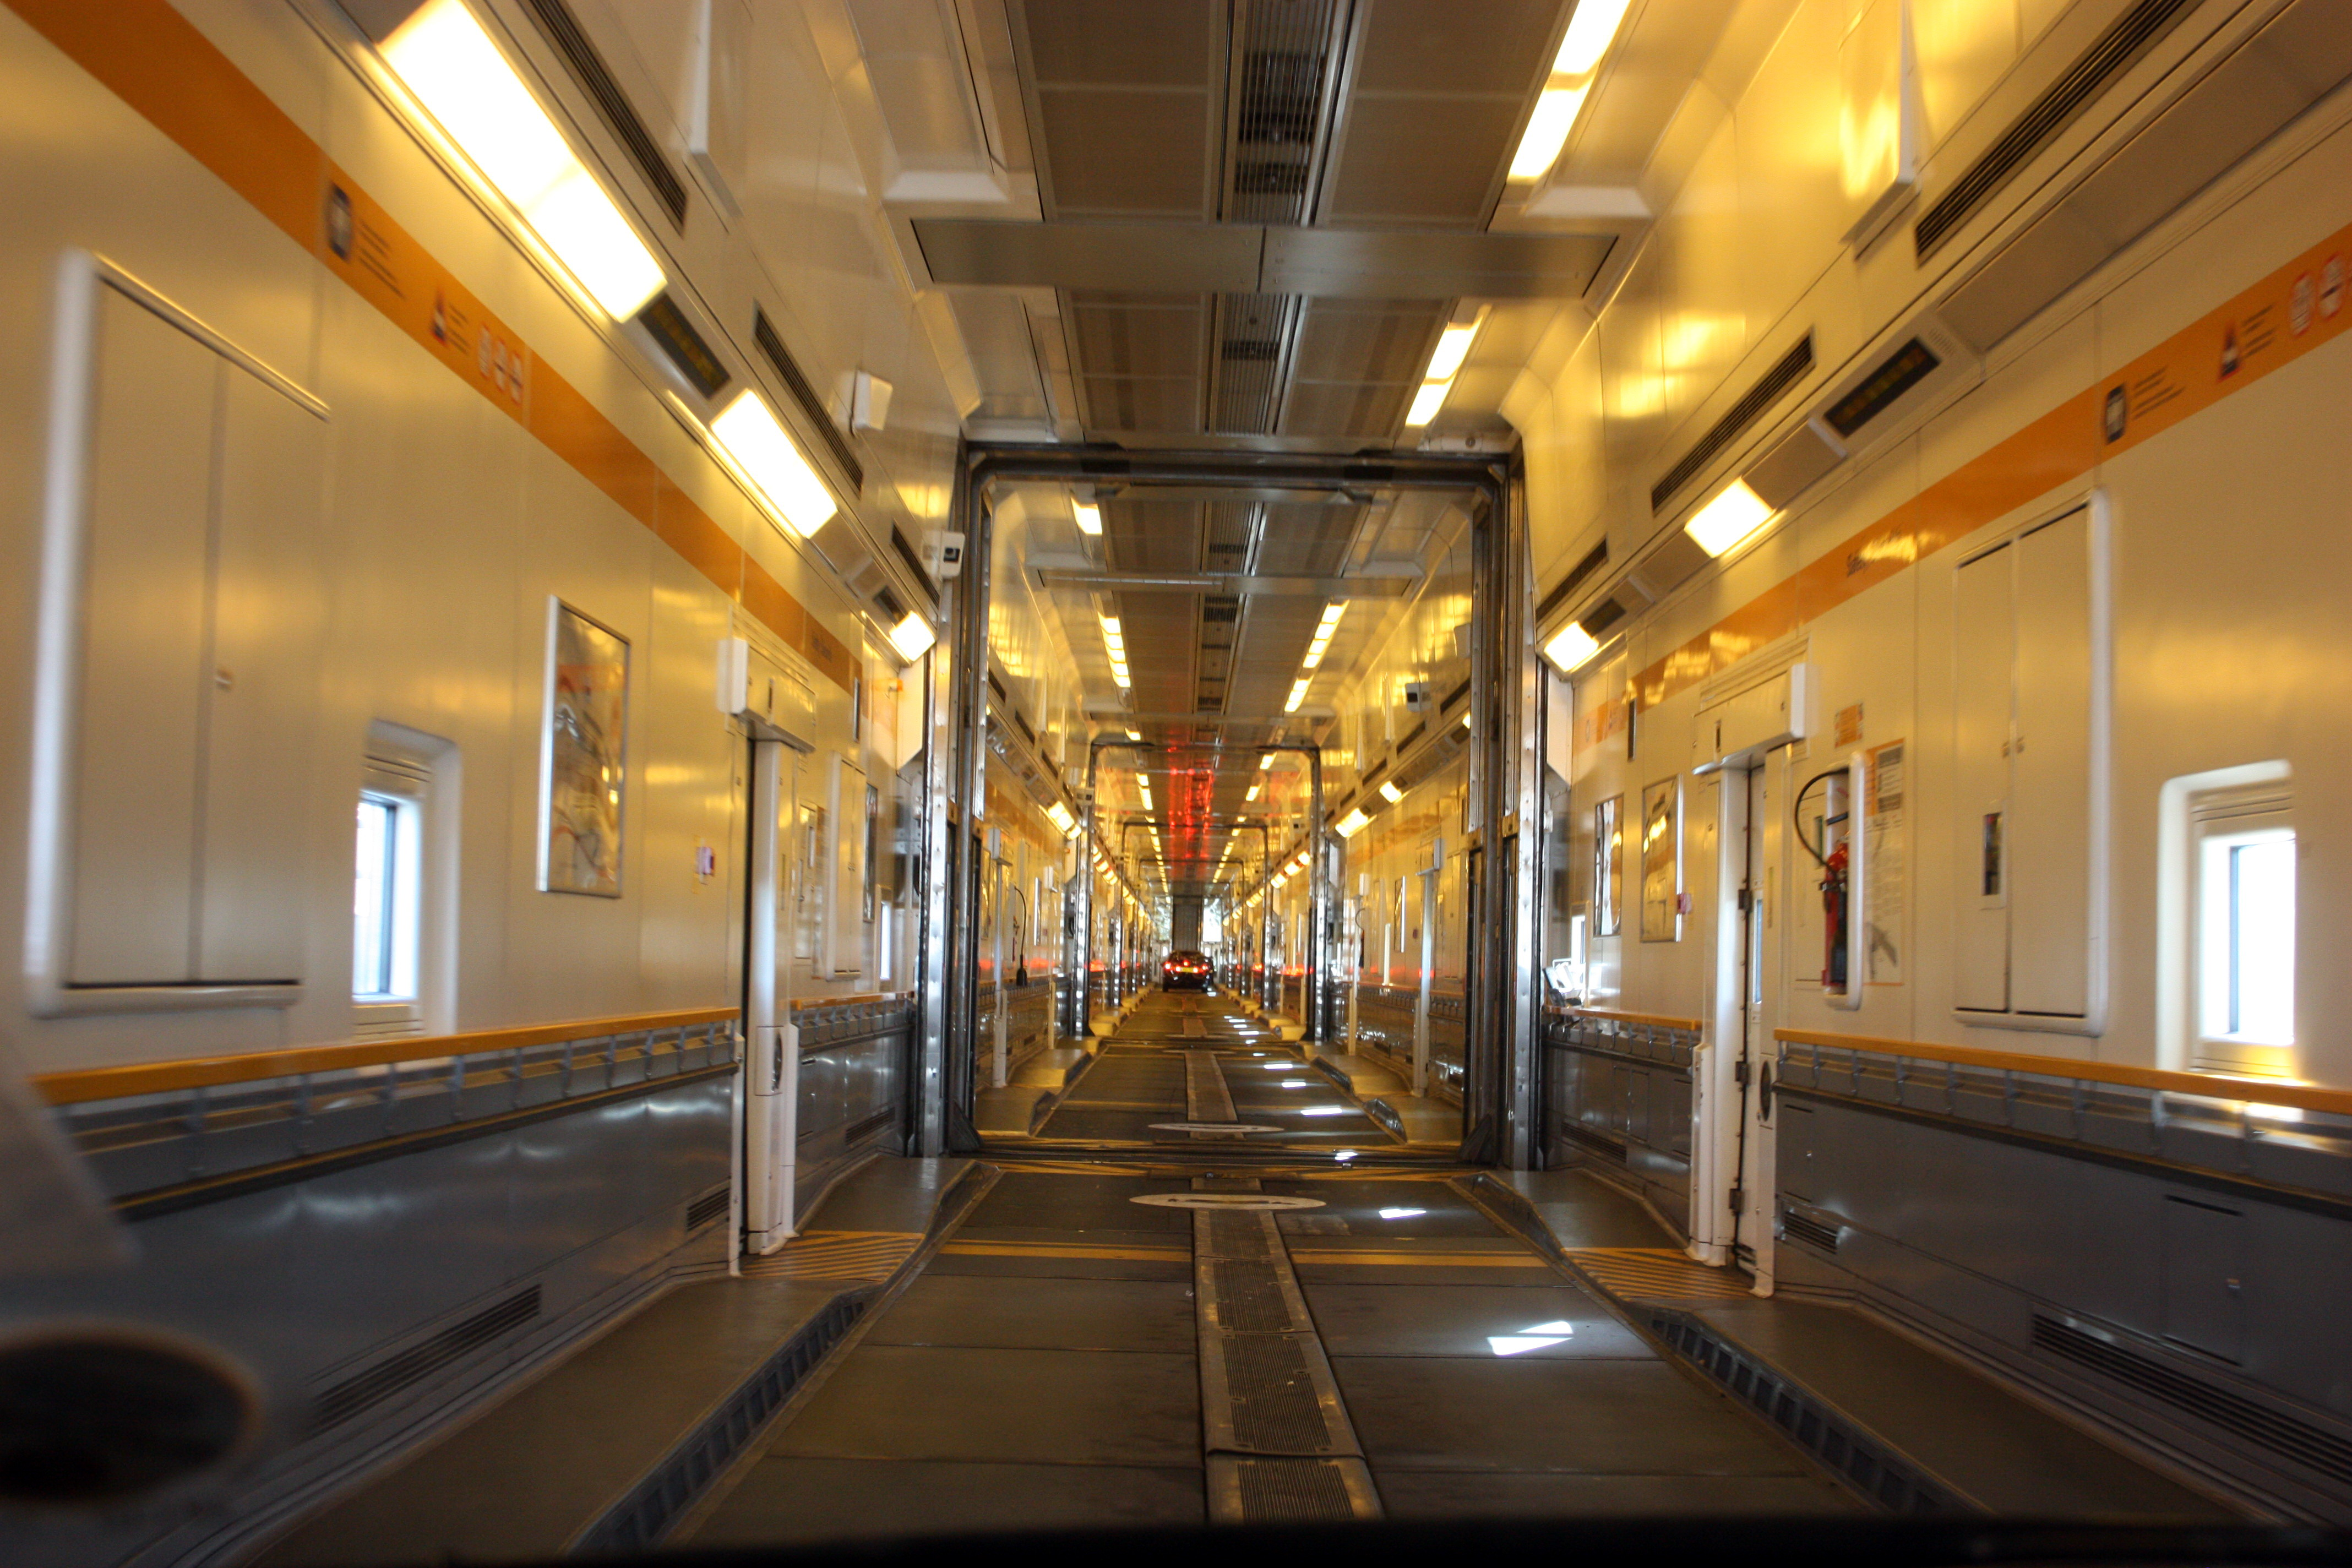 euro tunnel history Tunnels and underground excavations: (eurotunnel) england-france: 505: 314: 1994: tunneling history is filled with instances in which a sudden encounter with unanticipated conditions caused long stoppages for changes in construction methods.